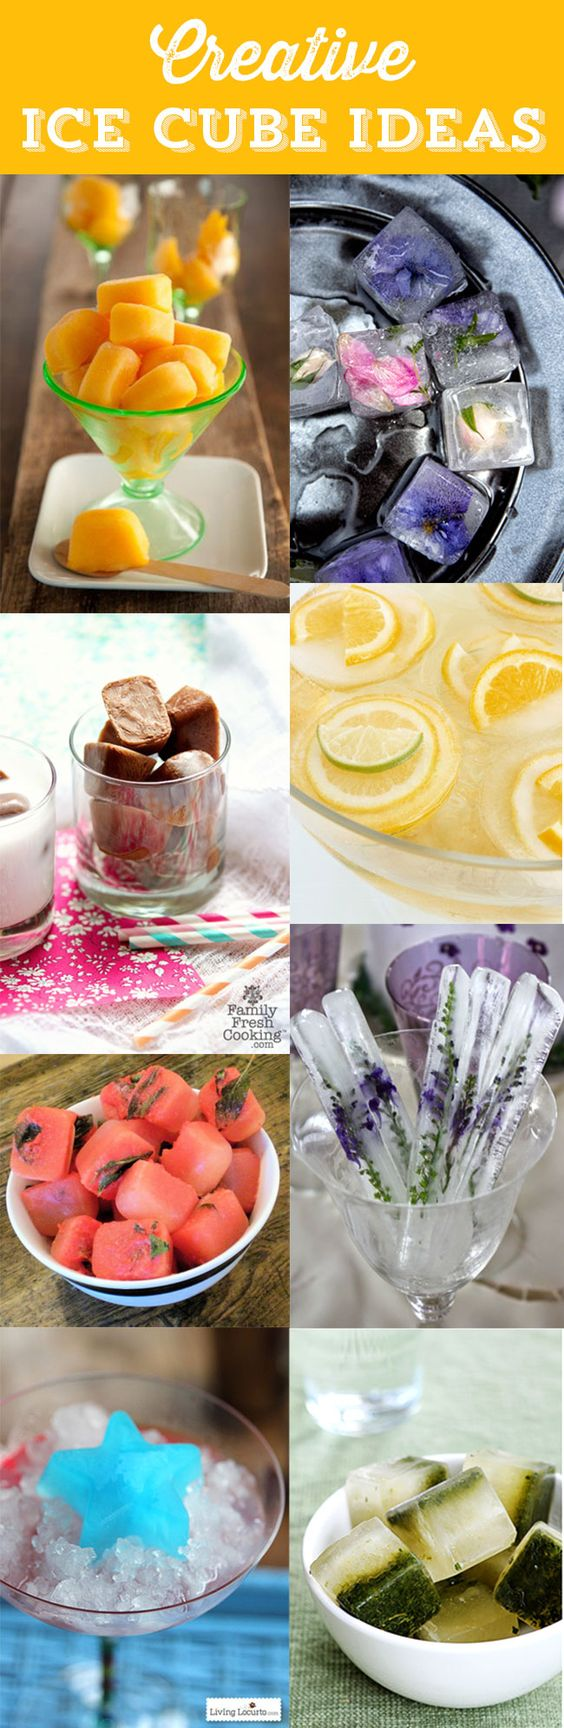 Creative Ice Cube Recipes! Simple and easy ways to serve your favorite drinks or party punch.: